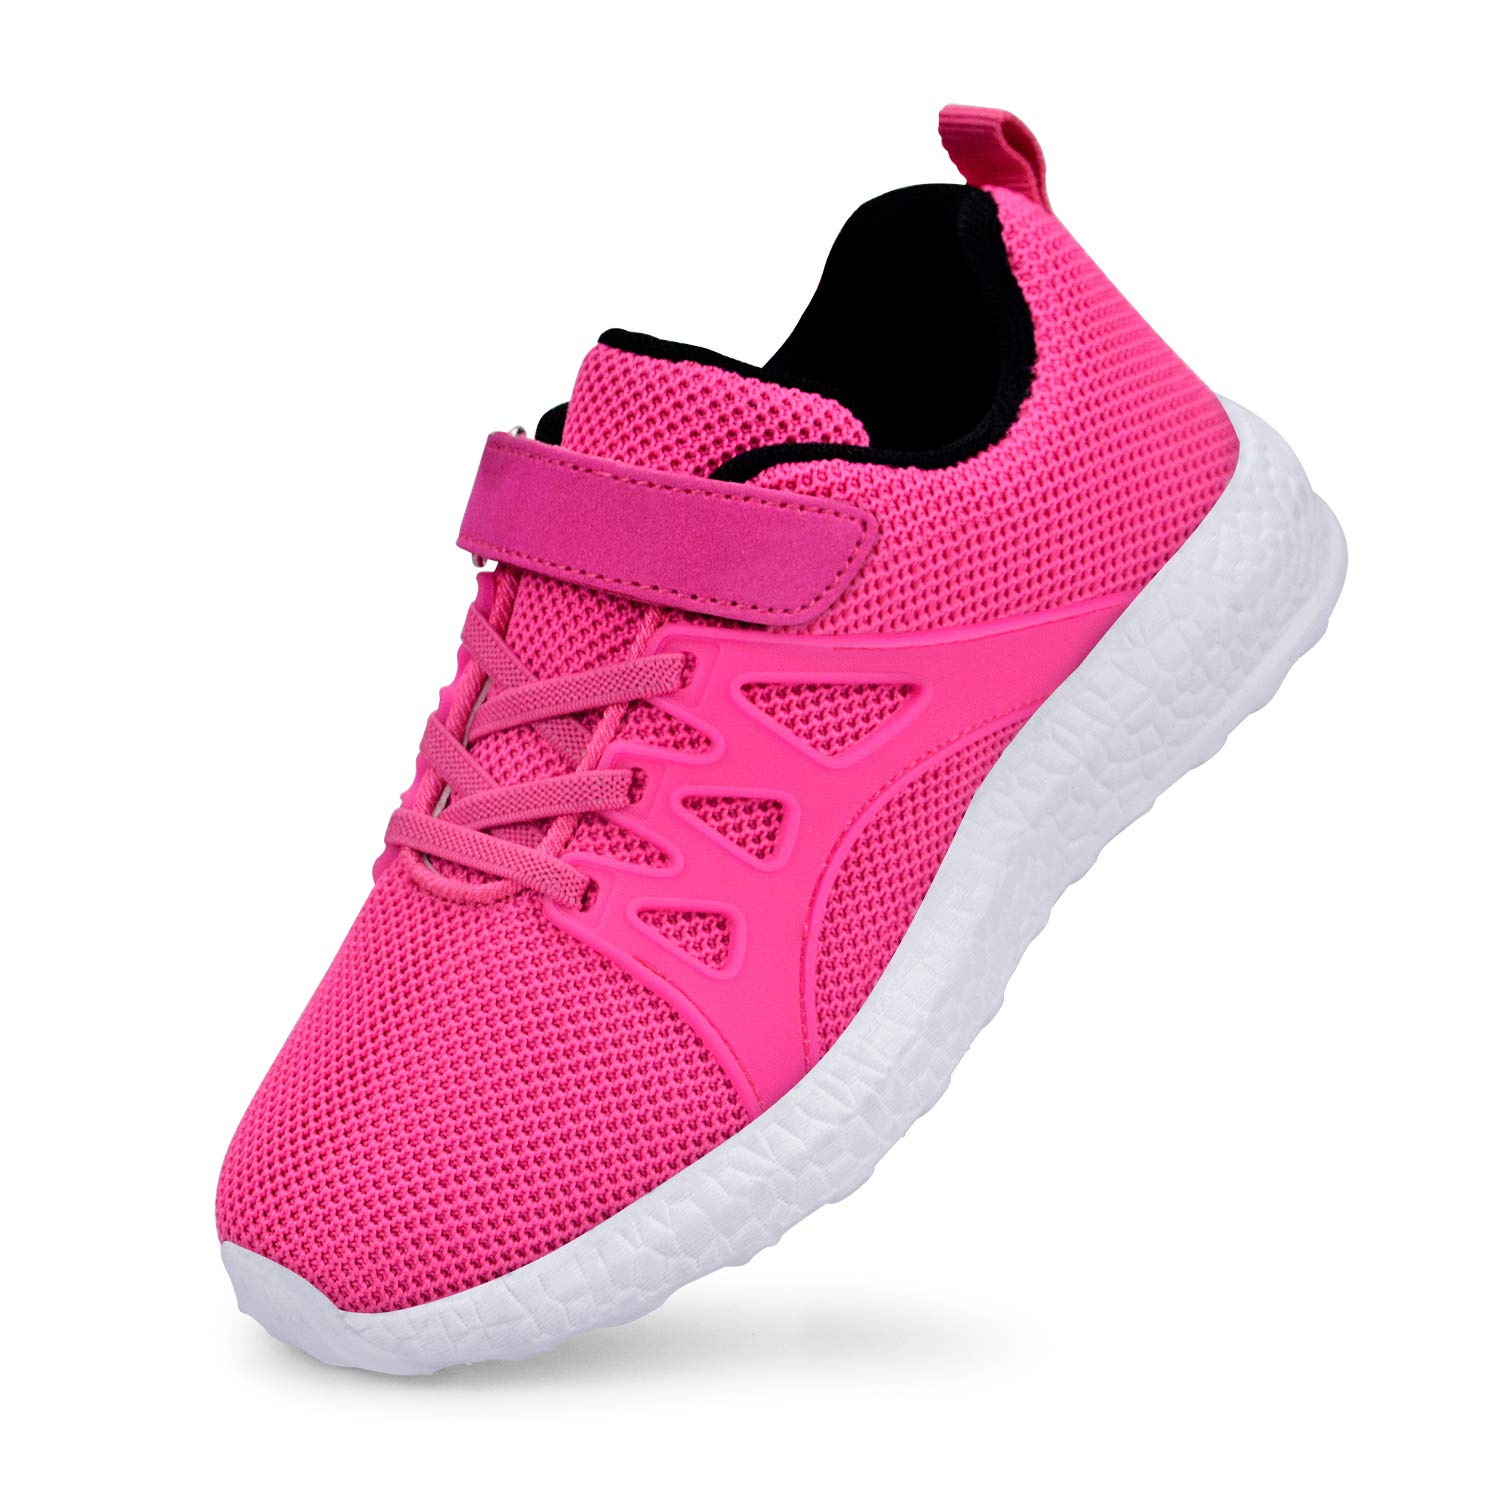 Feetmat Kids Shoes Boys Girls Comfortable Tennis Running Casual Sneakers